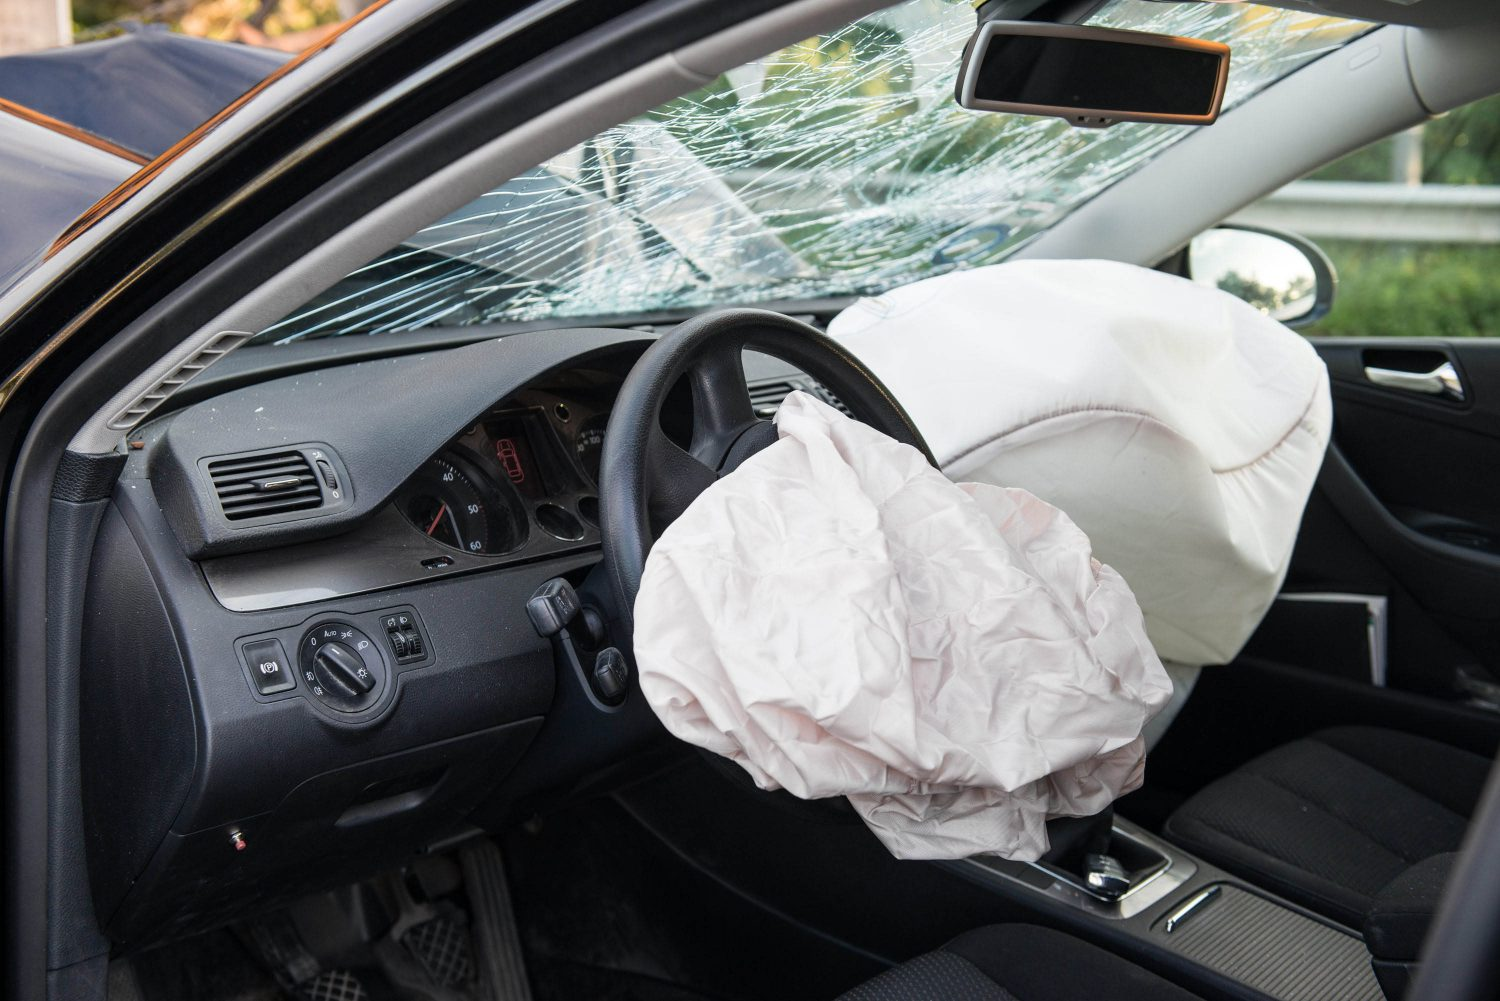 Exploding Takata Airbags Causing Deaths And Serious Injuries Are Not Limited To Honda Vehicles